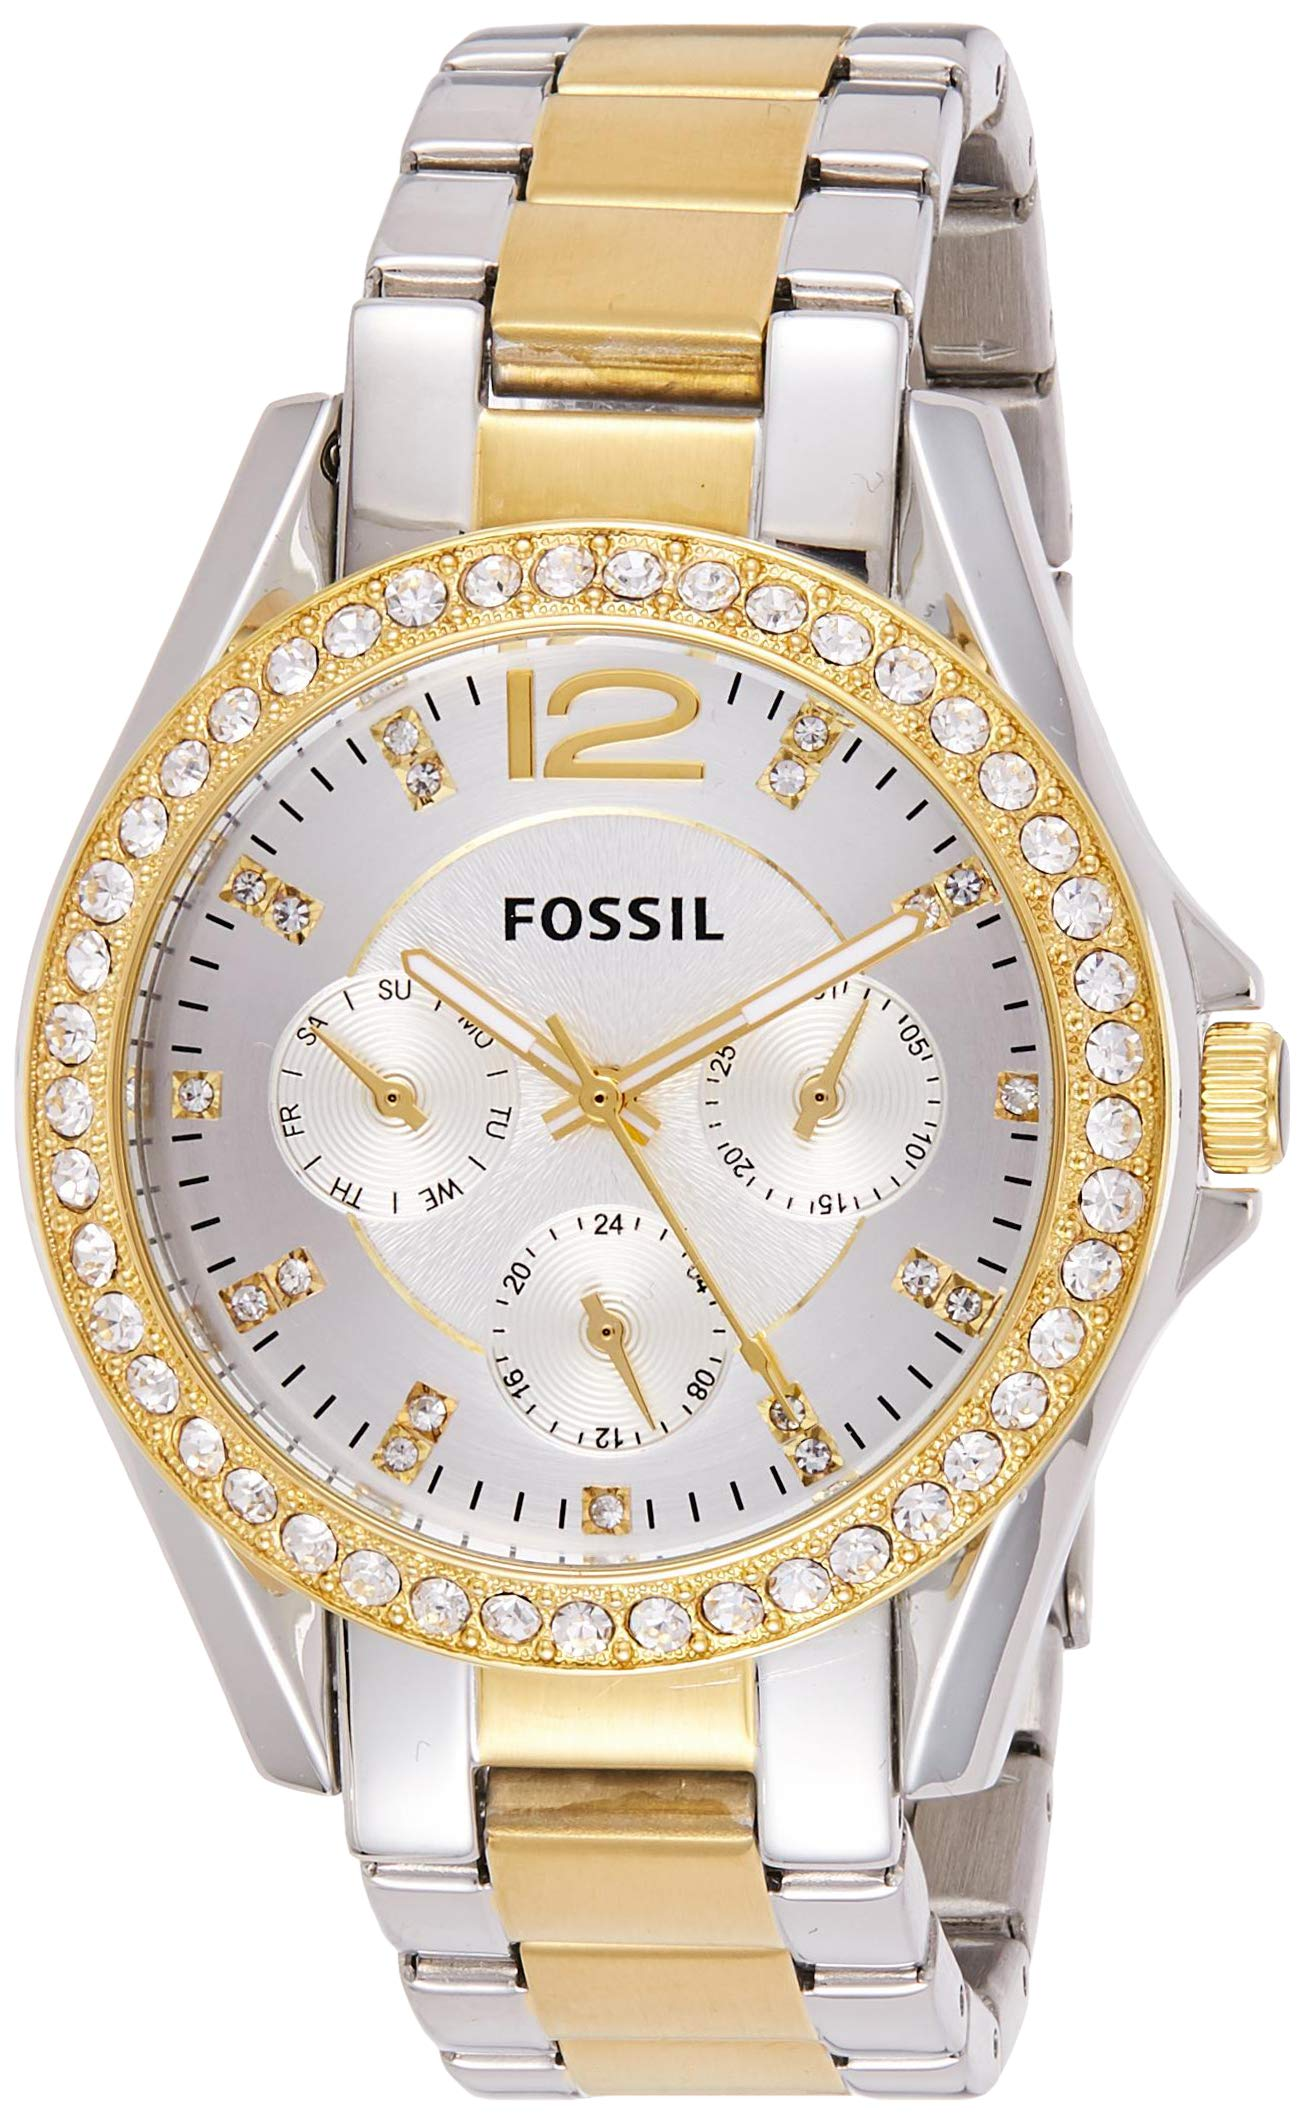 Fossil Women's Riley Quartz Two-Tone Stainless Steel Chronograph Watch, Color: Silver, Gold (Model: ES3204) by Fossil